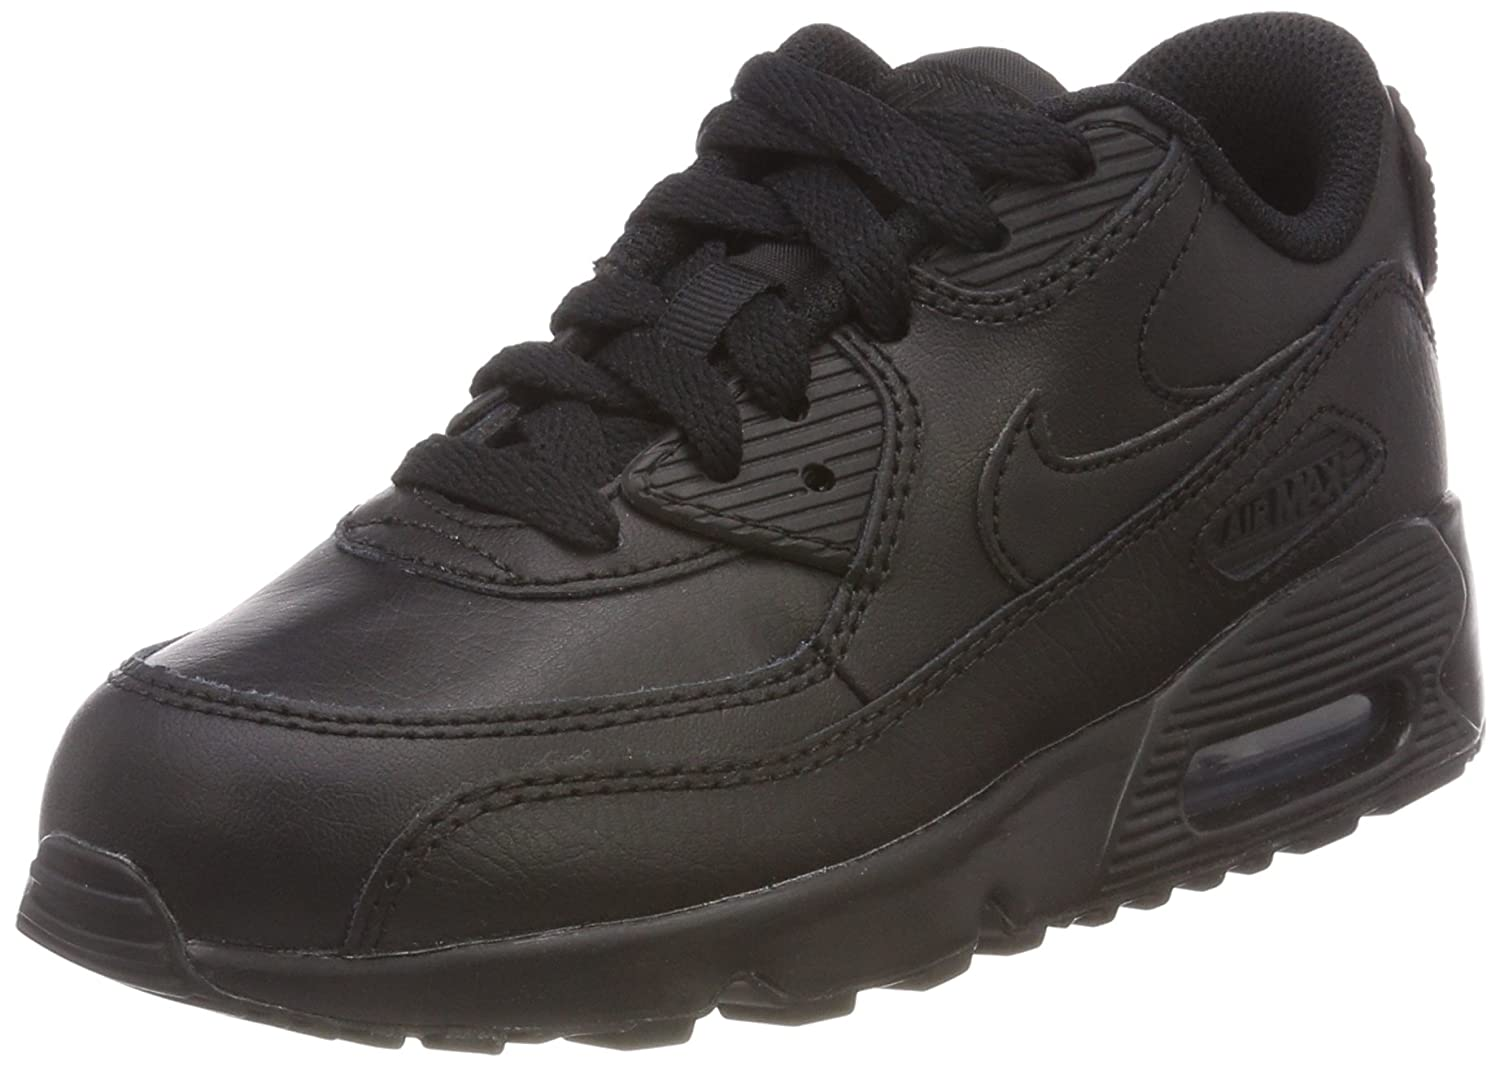 Nike Air Max 833414-001 90L PS Boy s Shoes Black 3 Y US  Buy Online at Low  Prices in India - Amazon.in 981660ed5